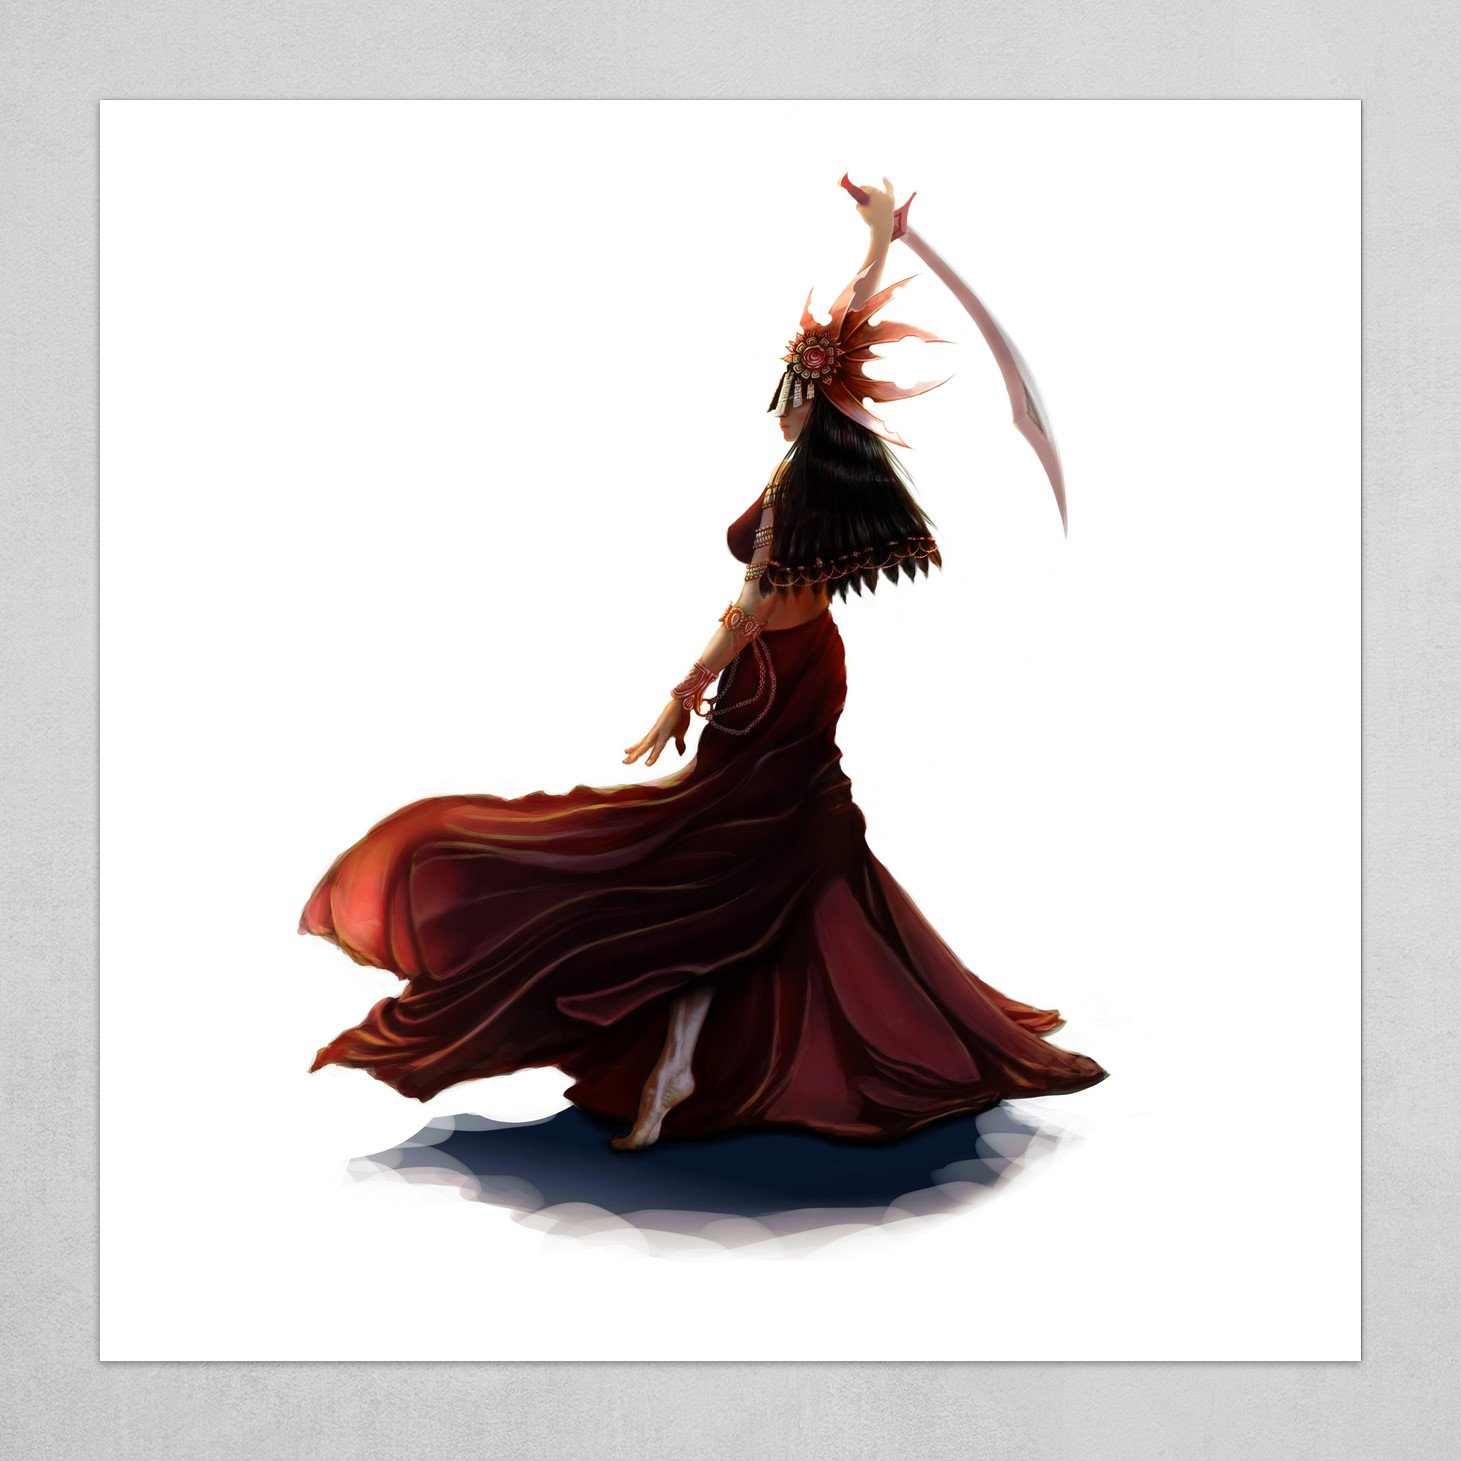 Irsila, the Dancer